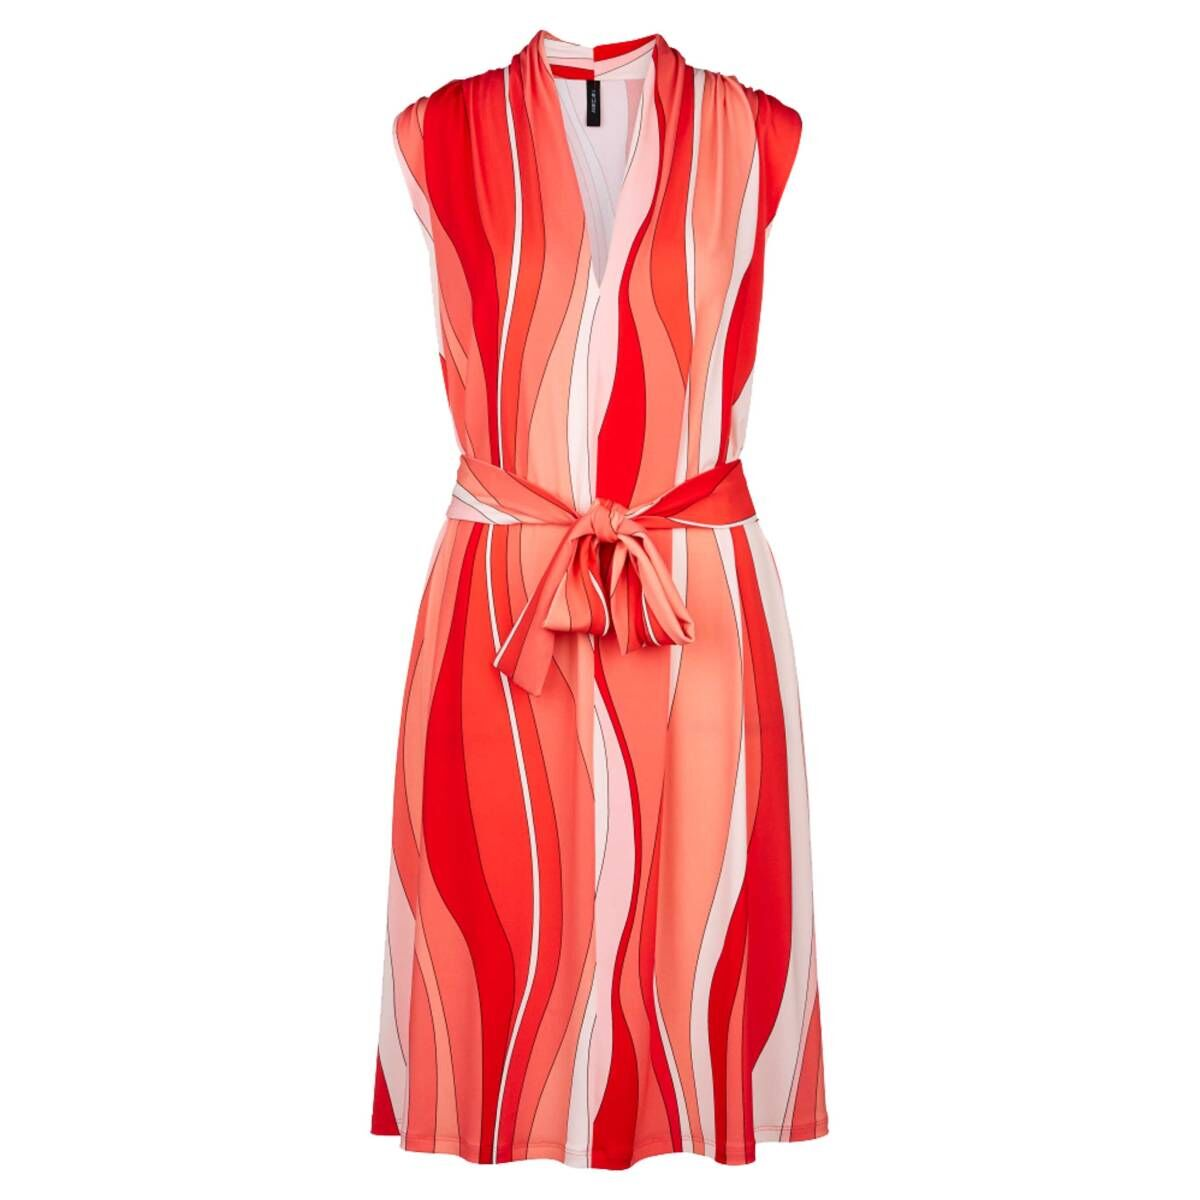 Kleid rot marc cain